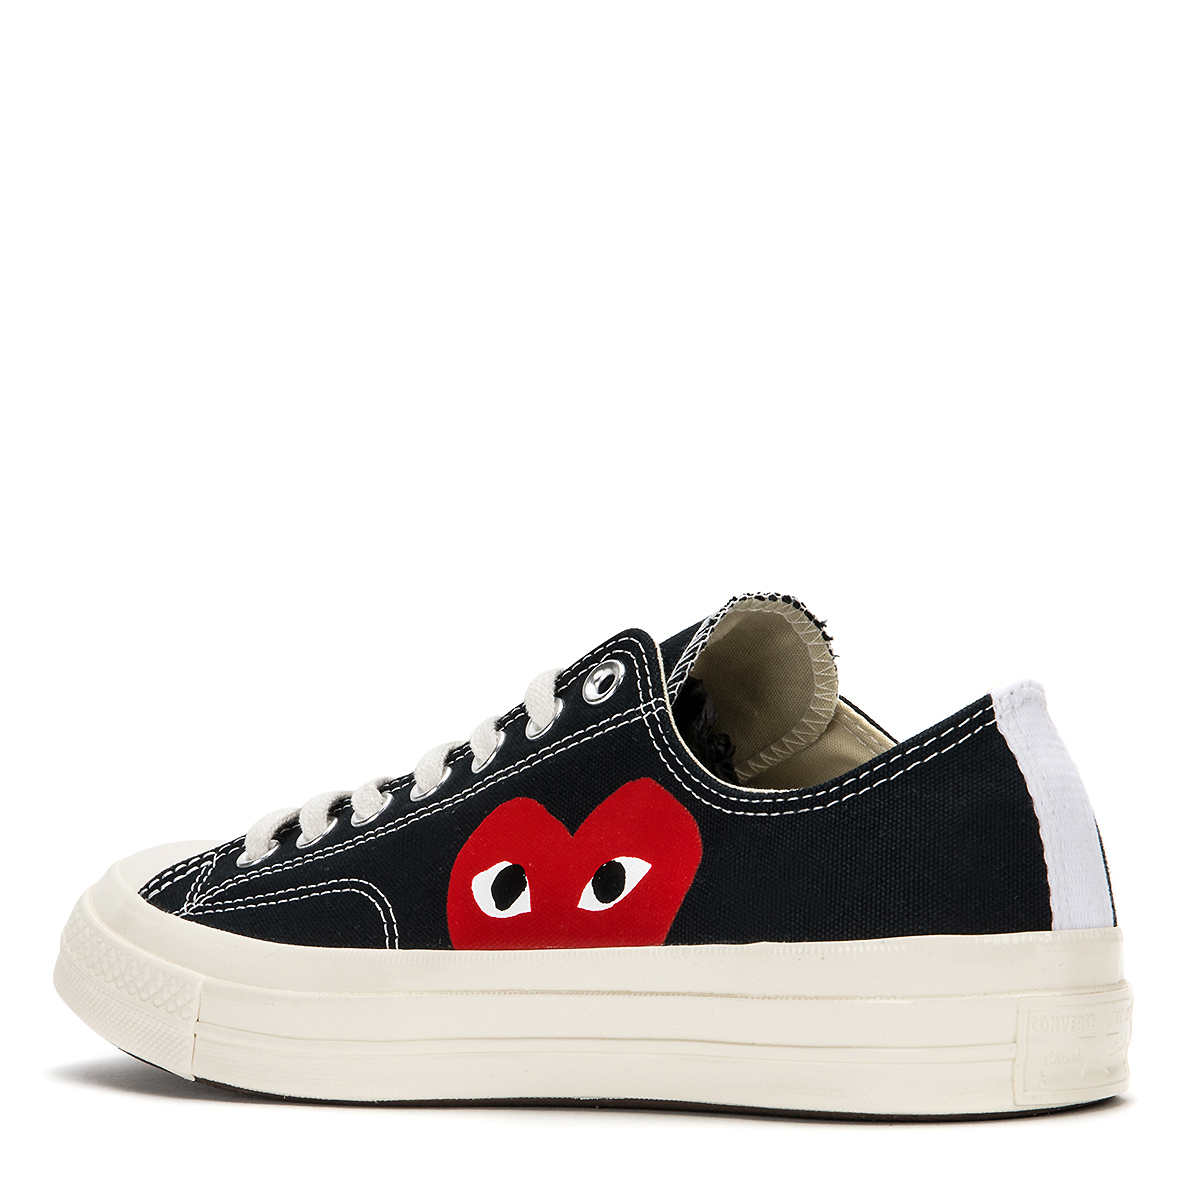 6ad485208f8bb Comme des Garcons Play x Converse Sneakers P1-K111 Beige